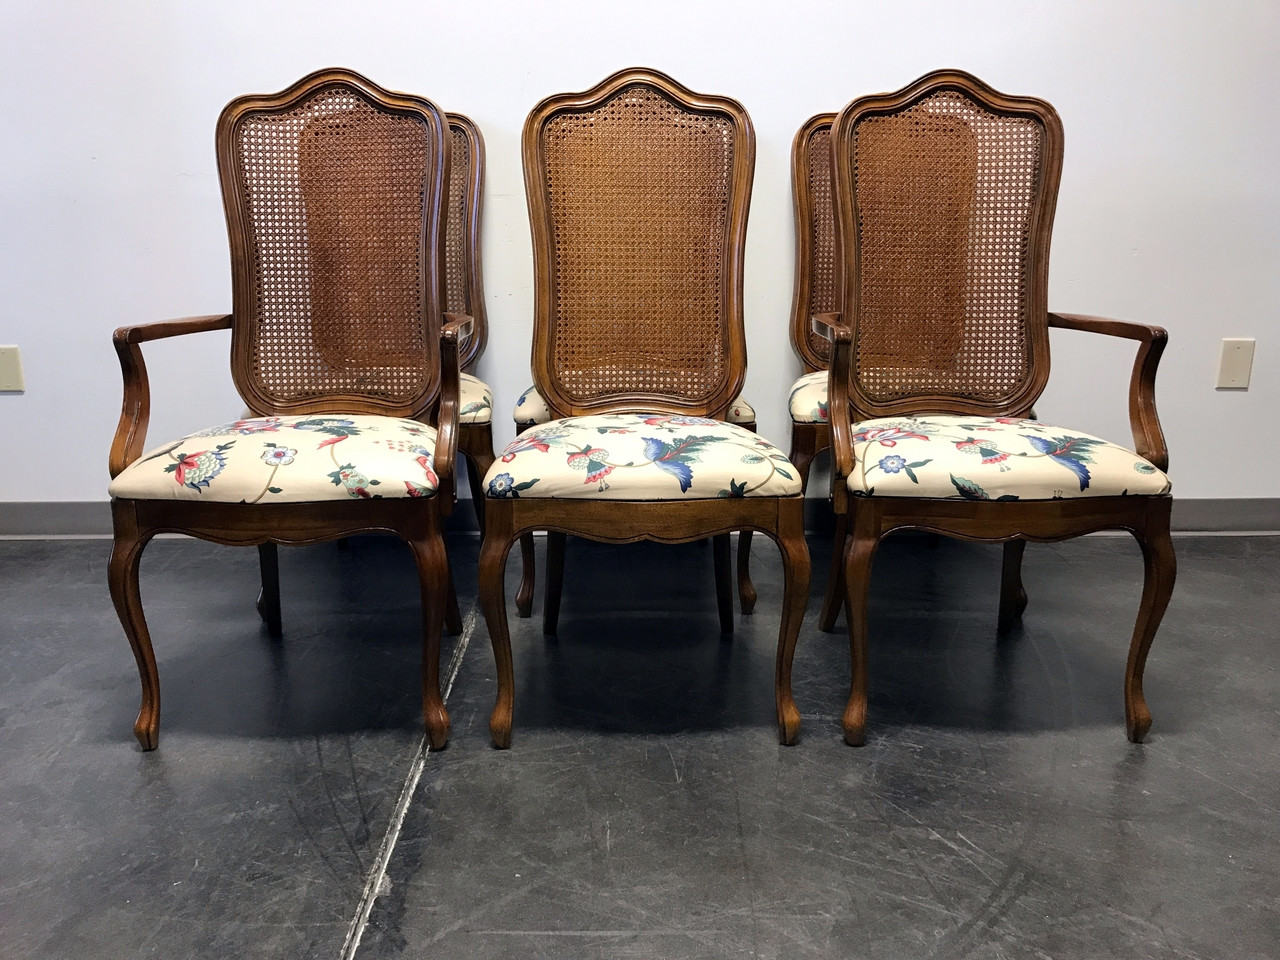 SOLD OUT THOMASVILLE French Country Provincial Cane Dining Chairs